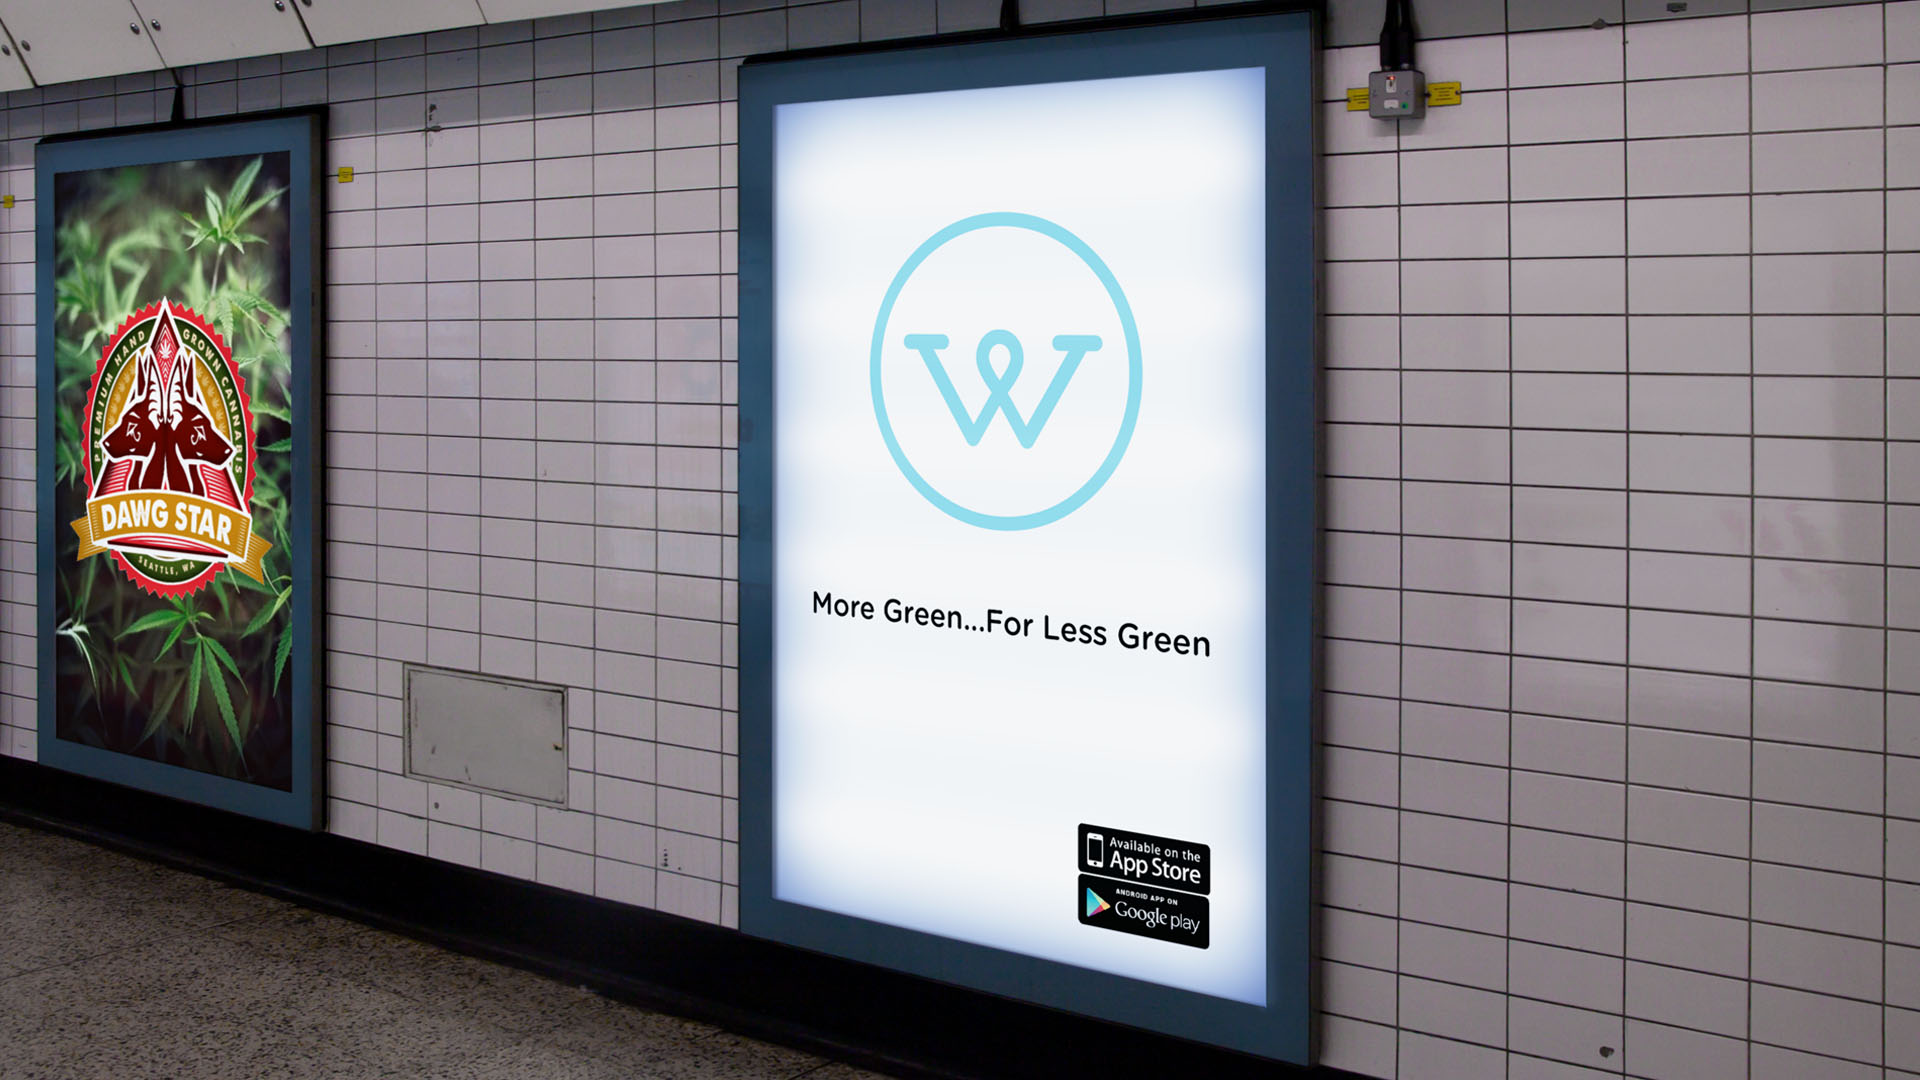 Wikileaf is the first cannabis company to advertise in an airport